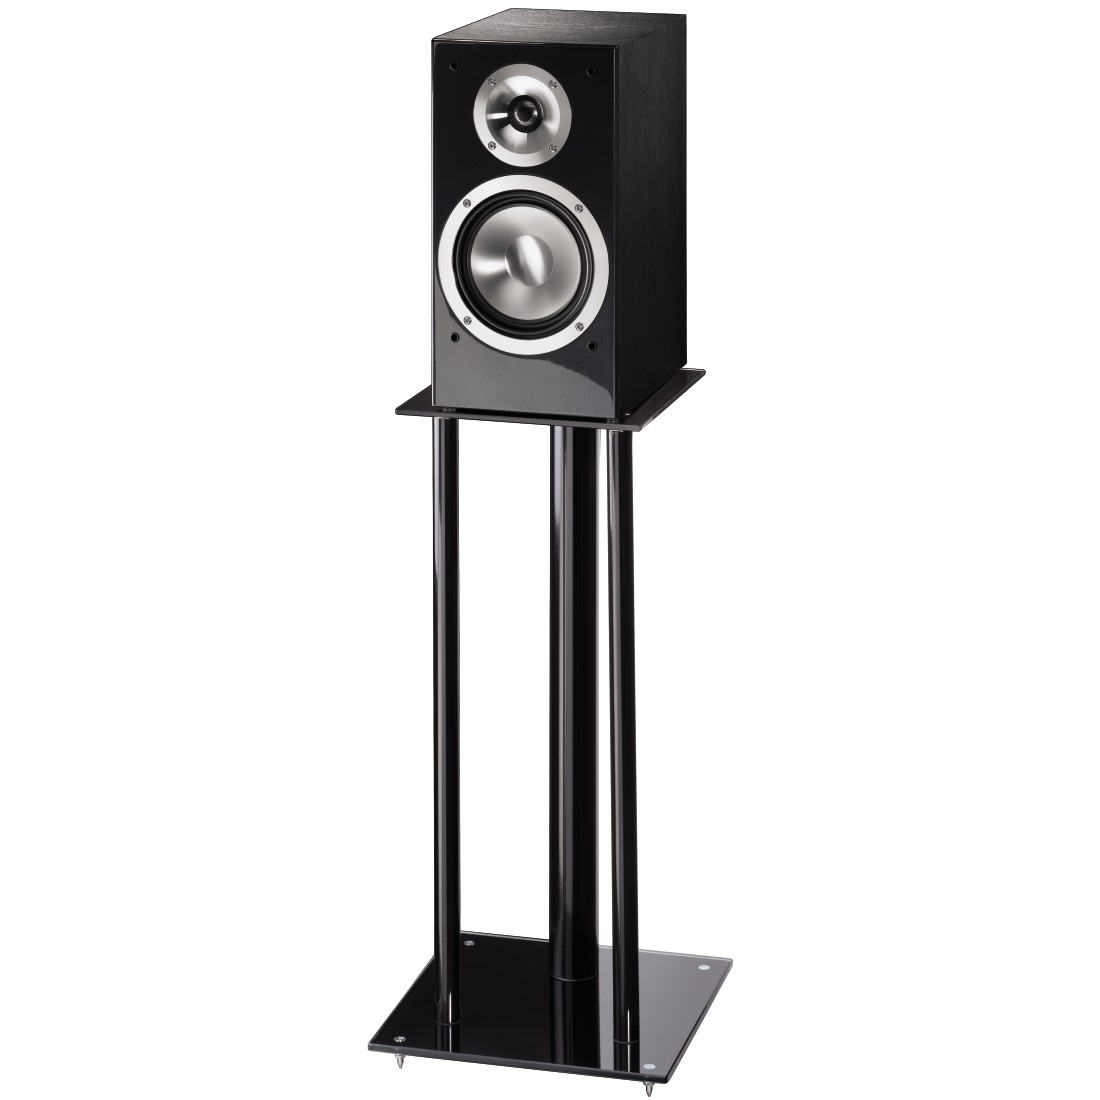 awx High-Res Appliance - Hama, Speaker Stand, black